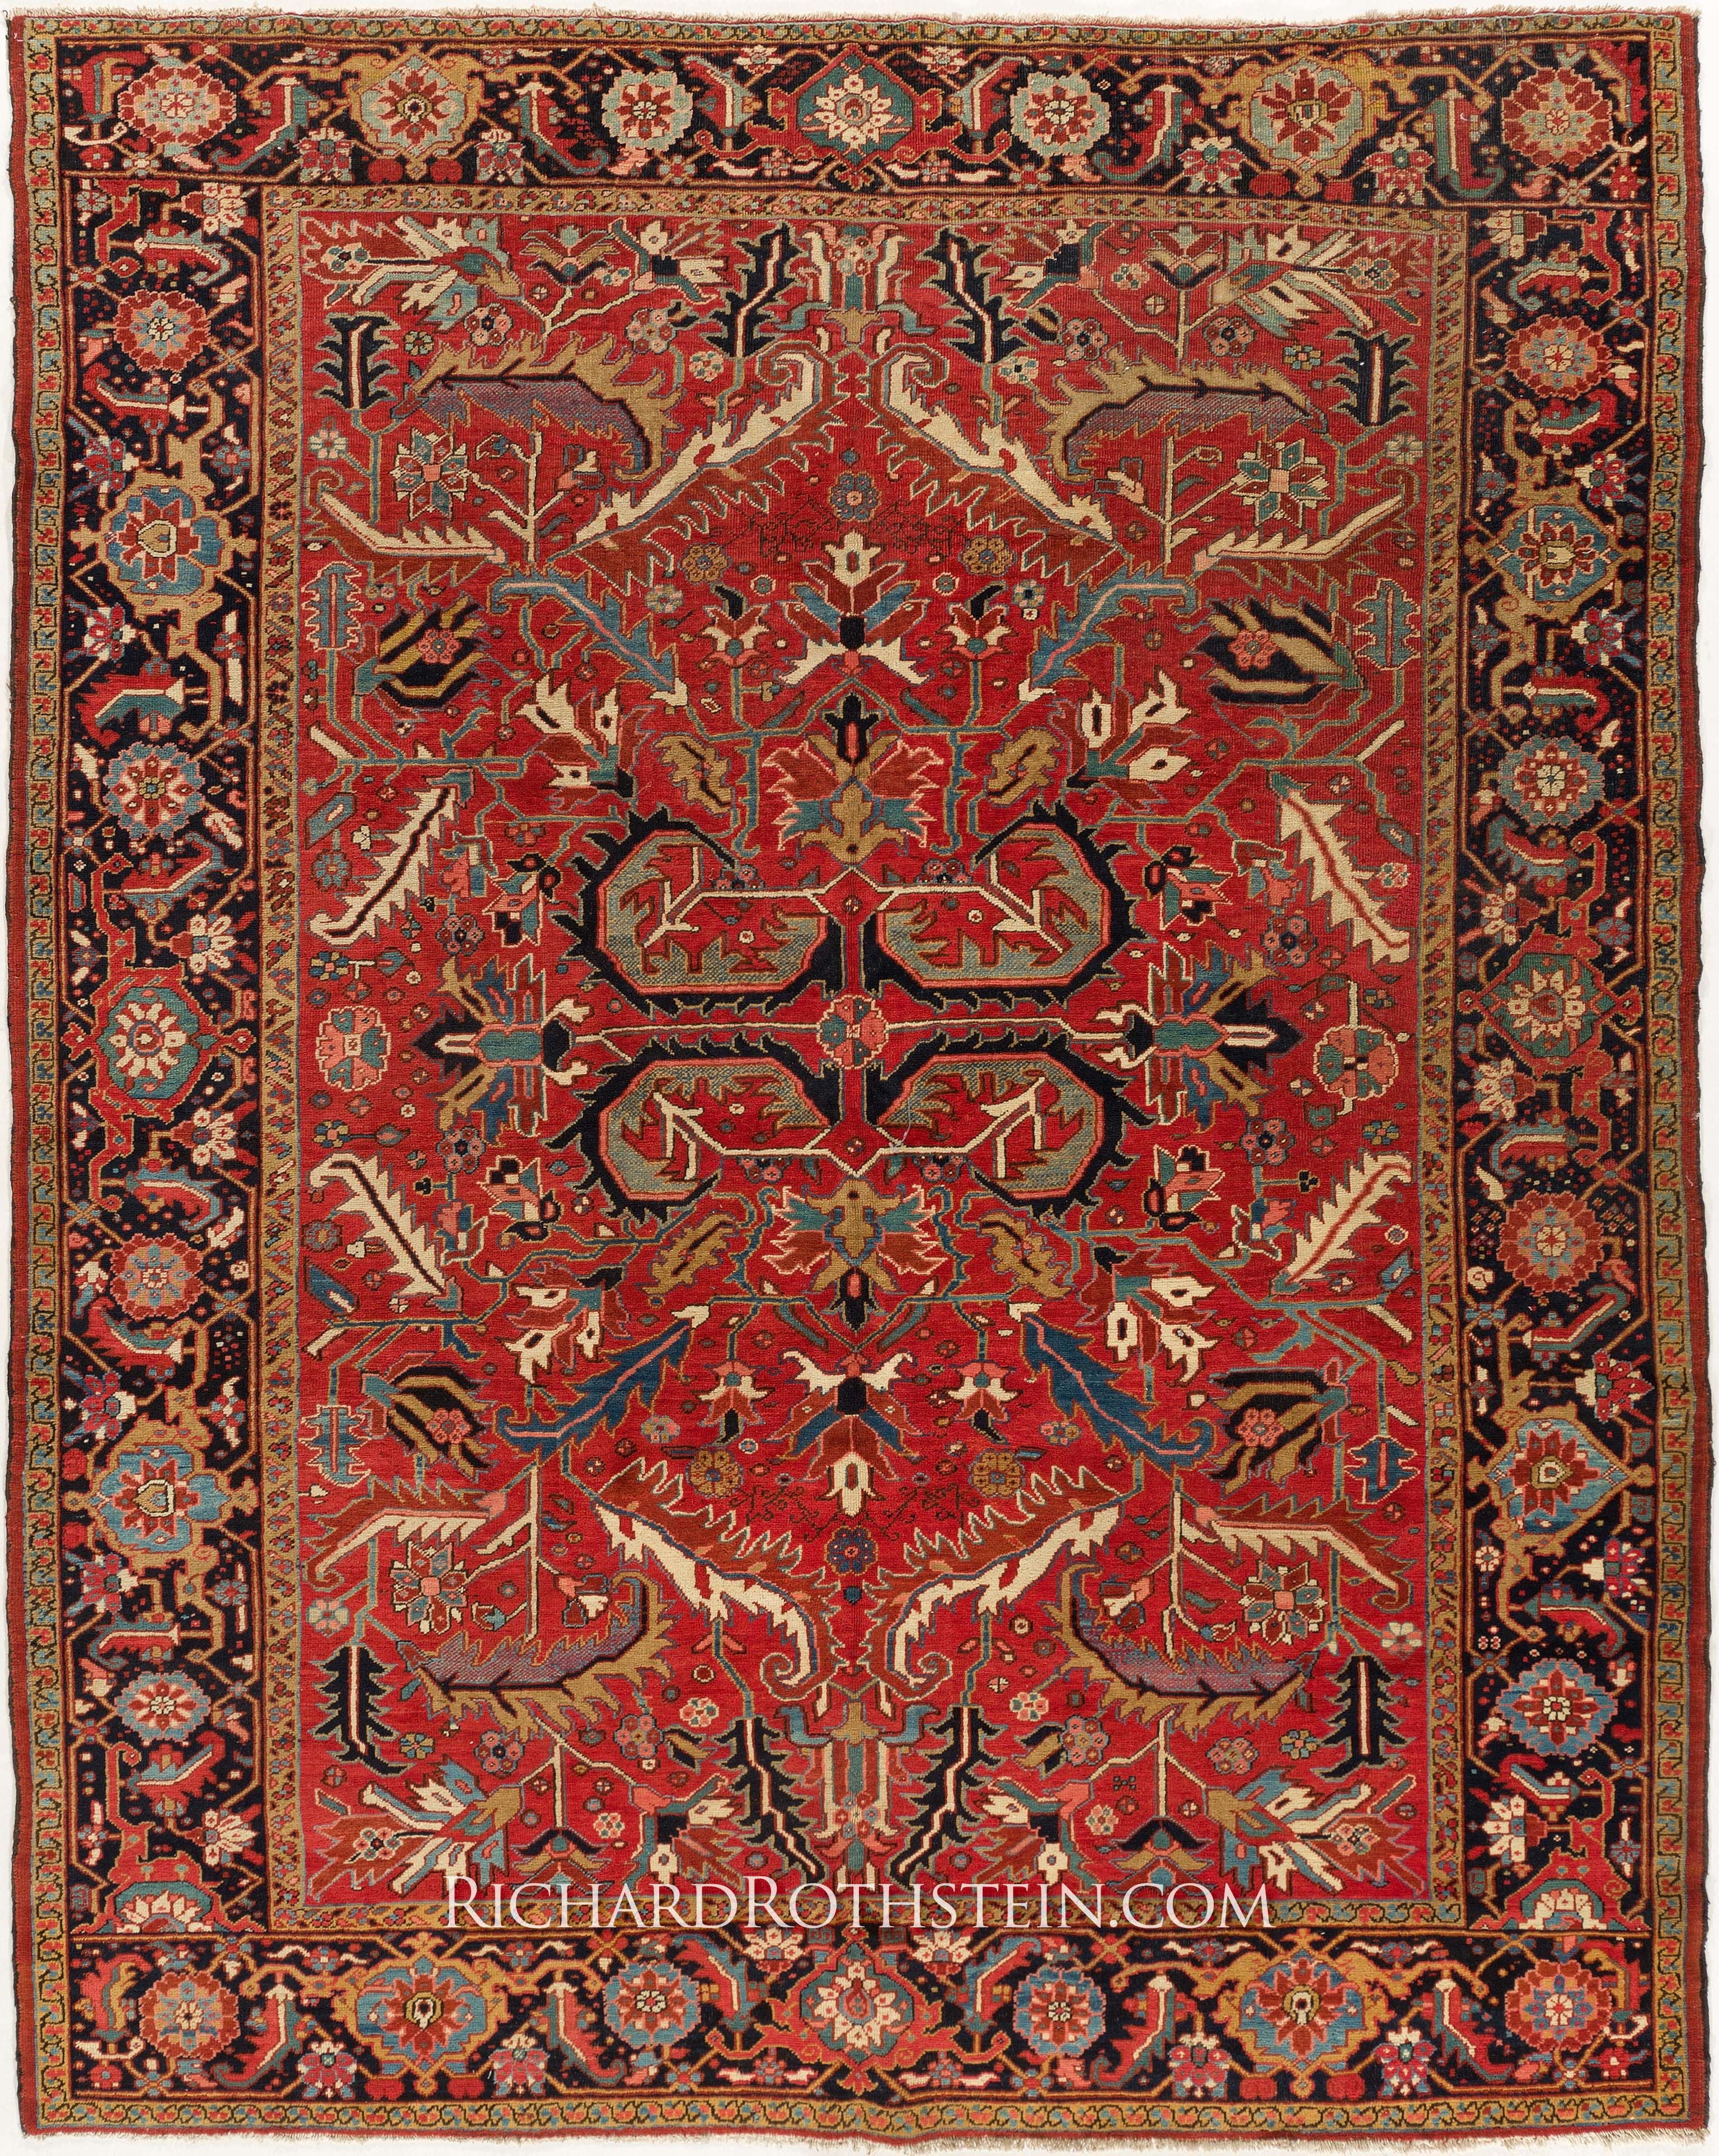 Antique Persian Rugs Google Search Black And White In